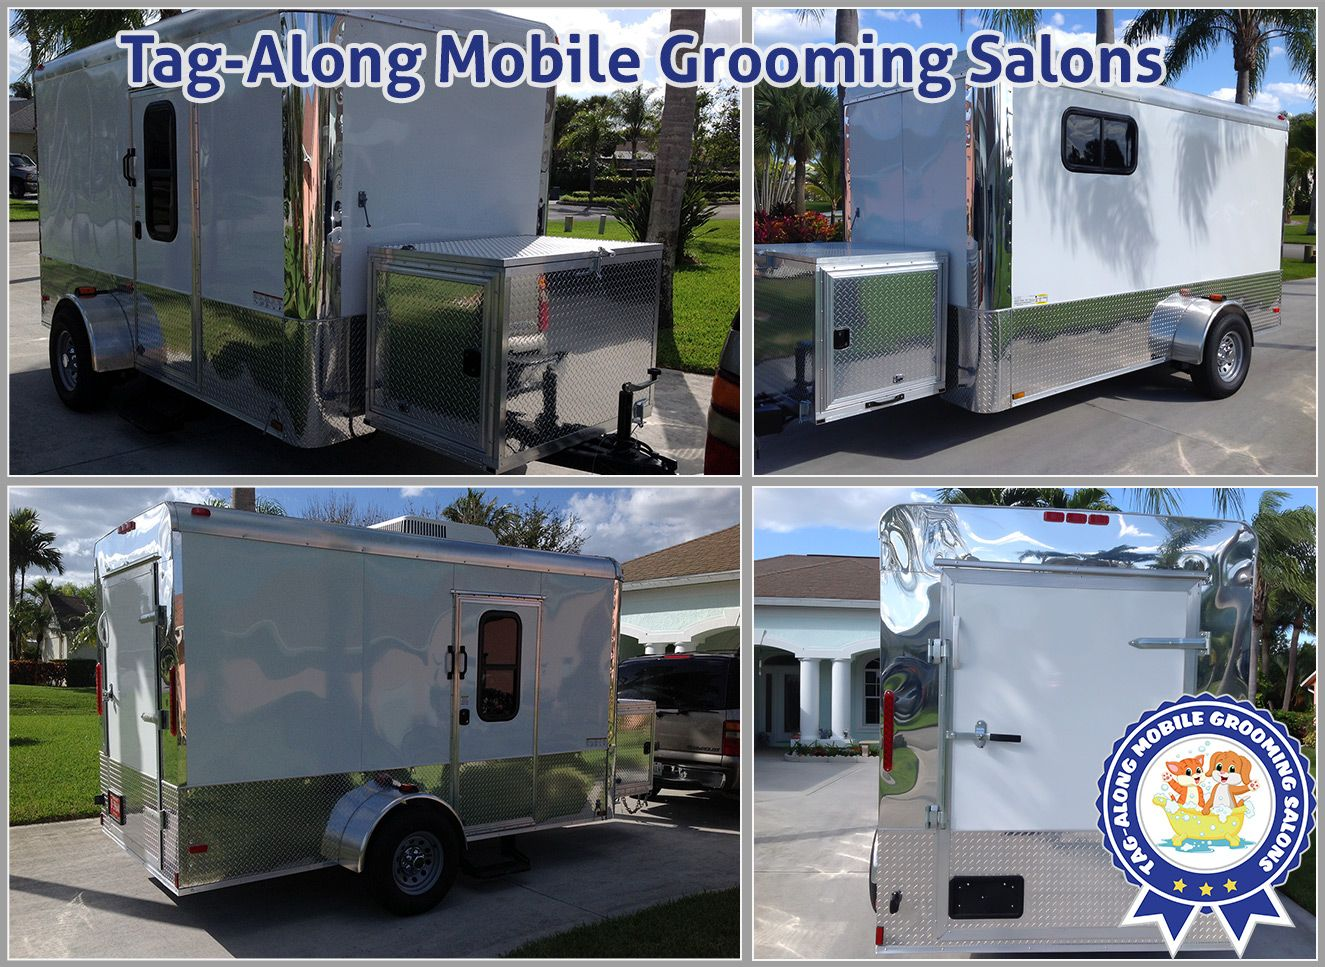 Mobile Pet Grooming Business|Pet Grooming Trailers for Sale | Mobile Dog Grooming Trailers For Sale